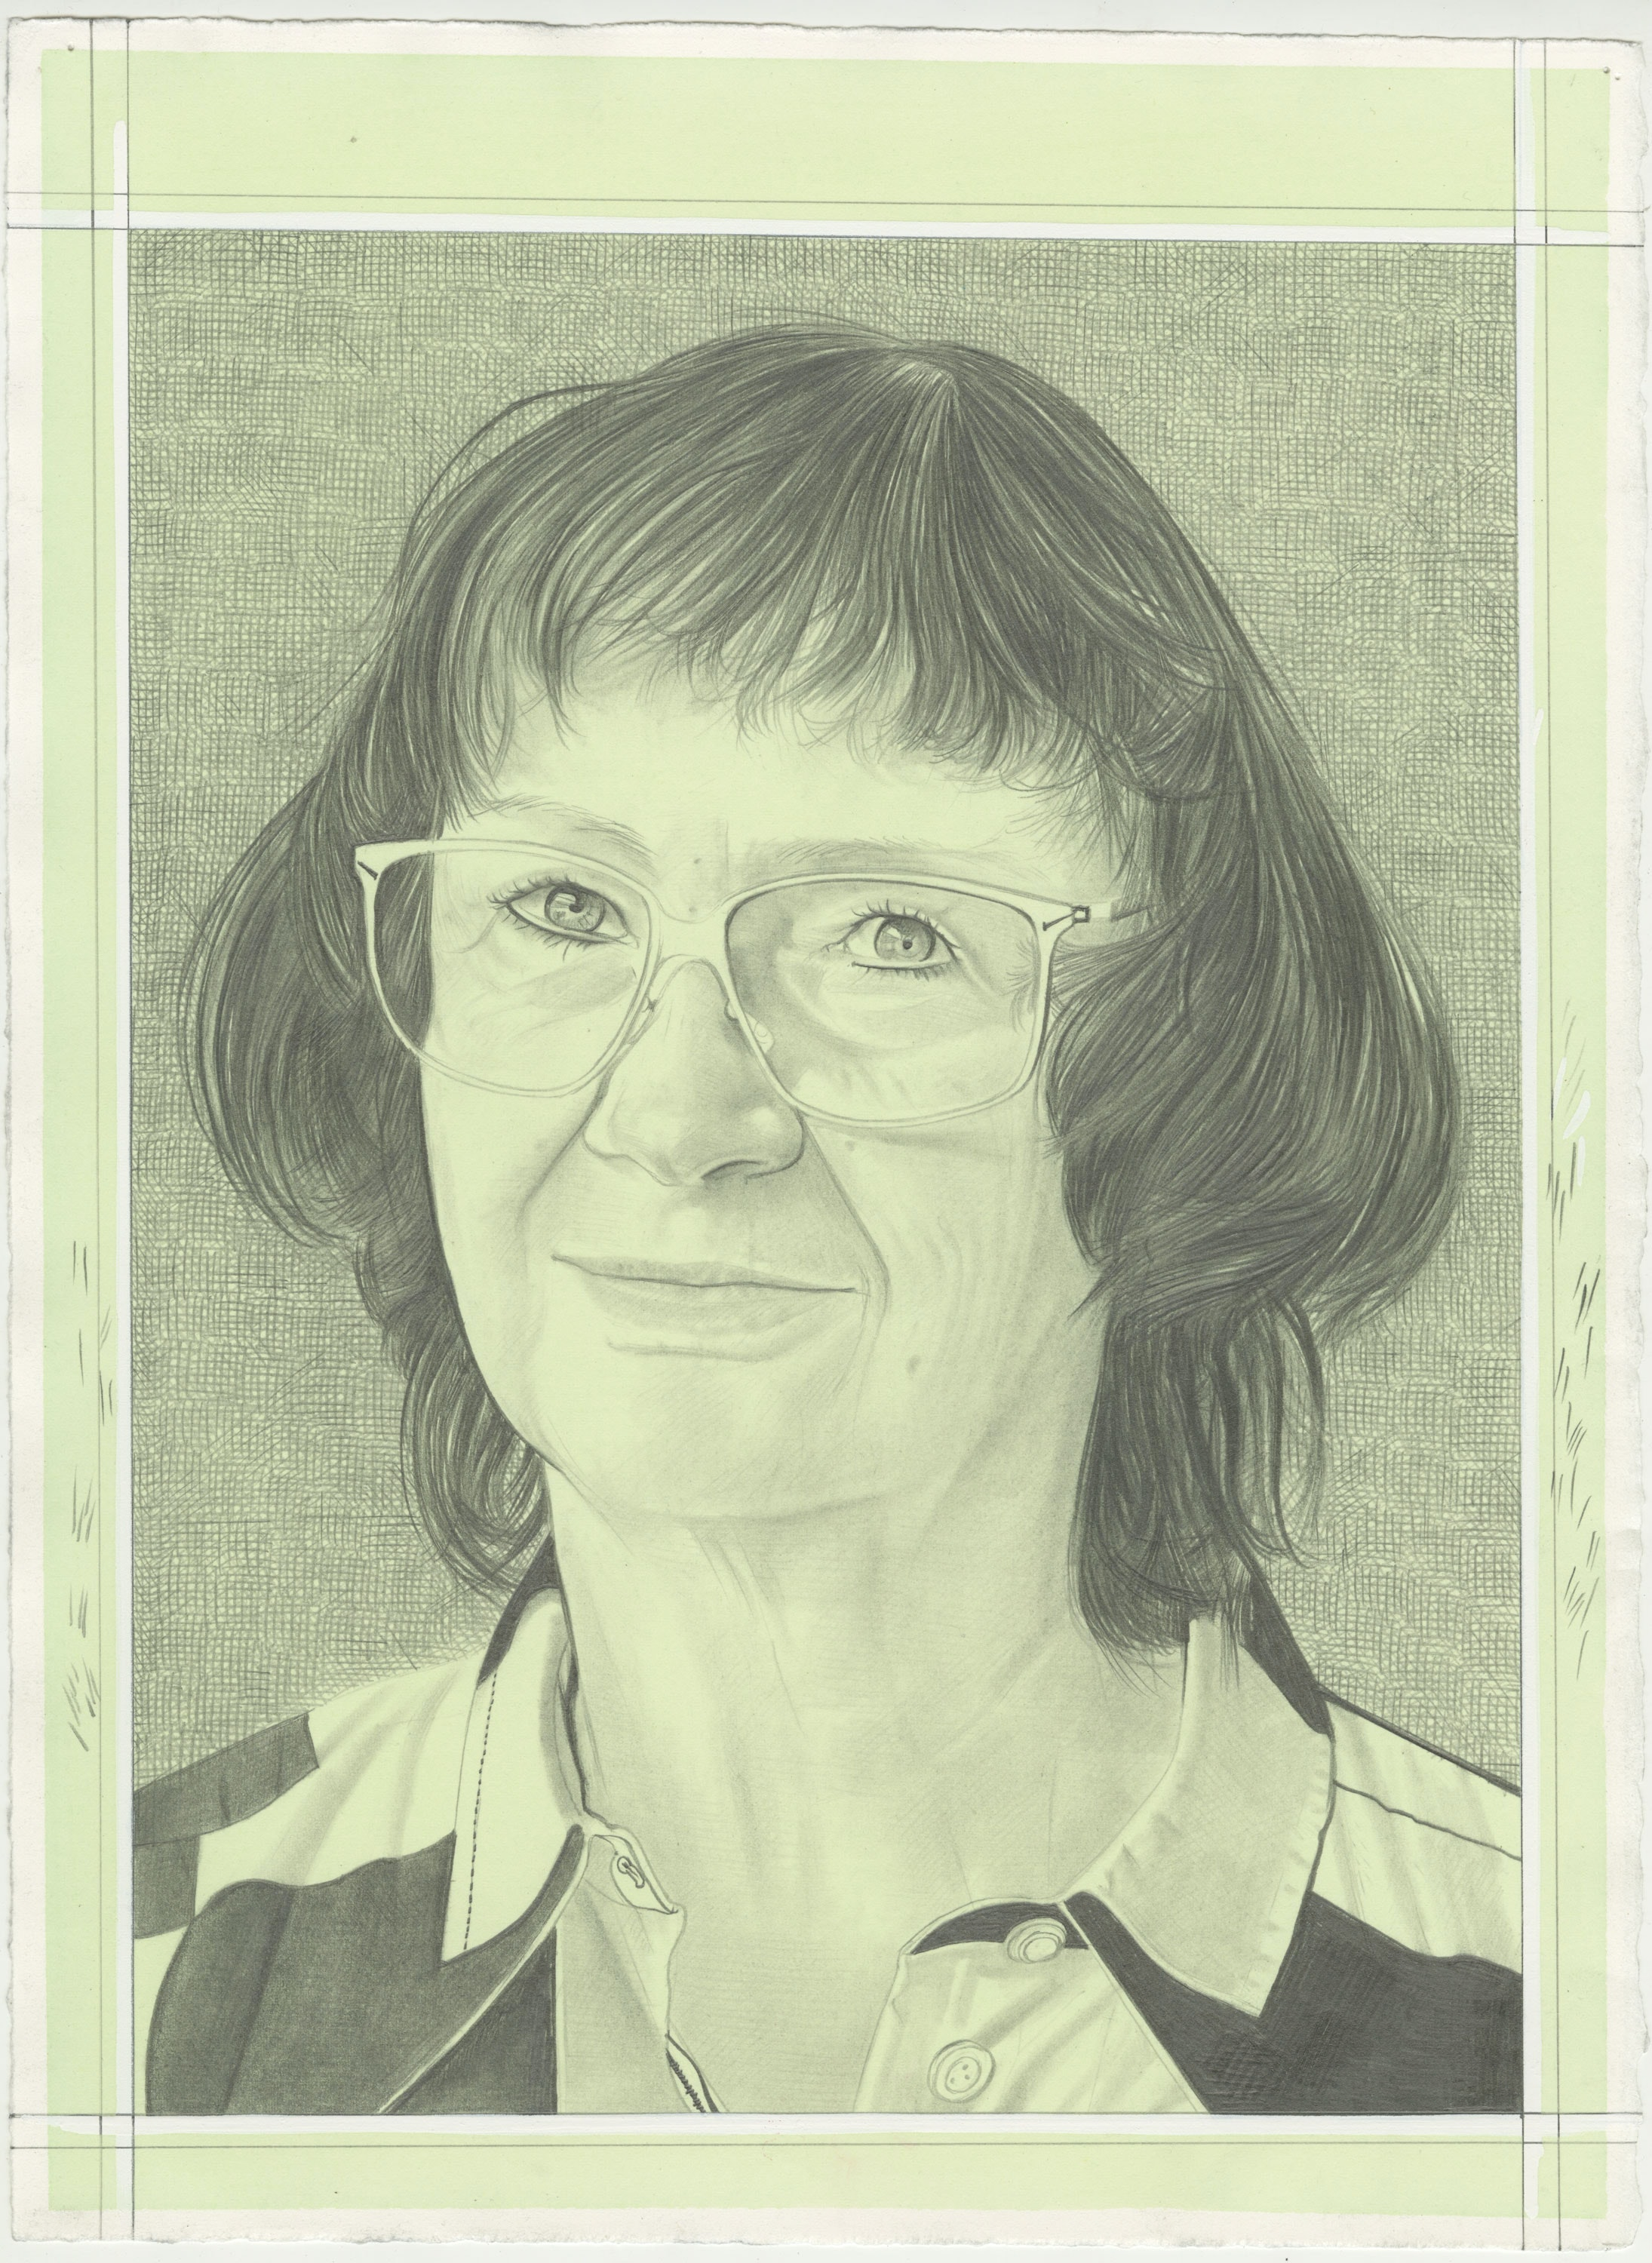 Portrait of Jo Smail, pencil on paper by Phong H. Bui.